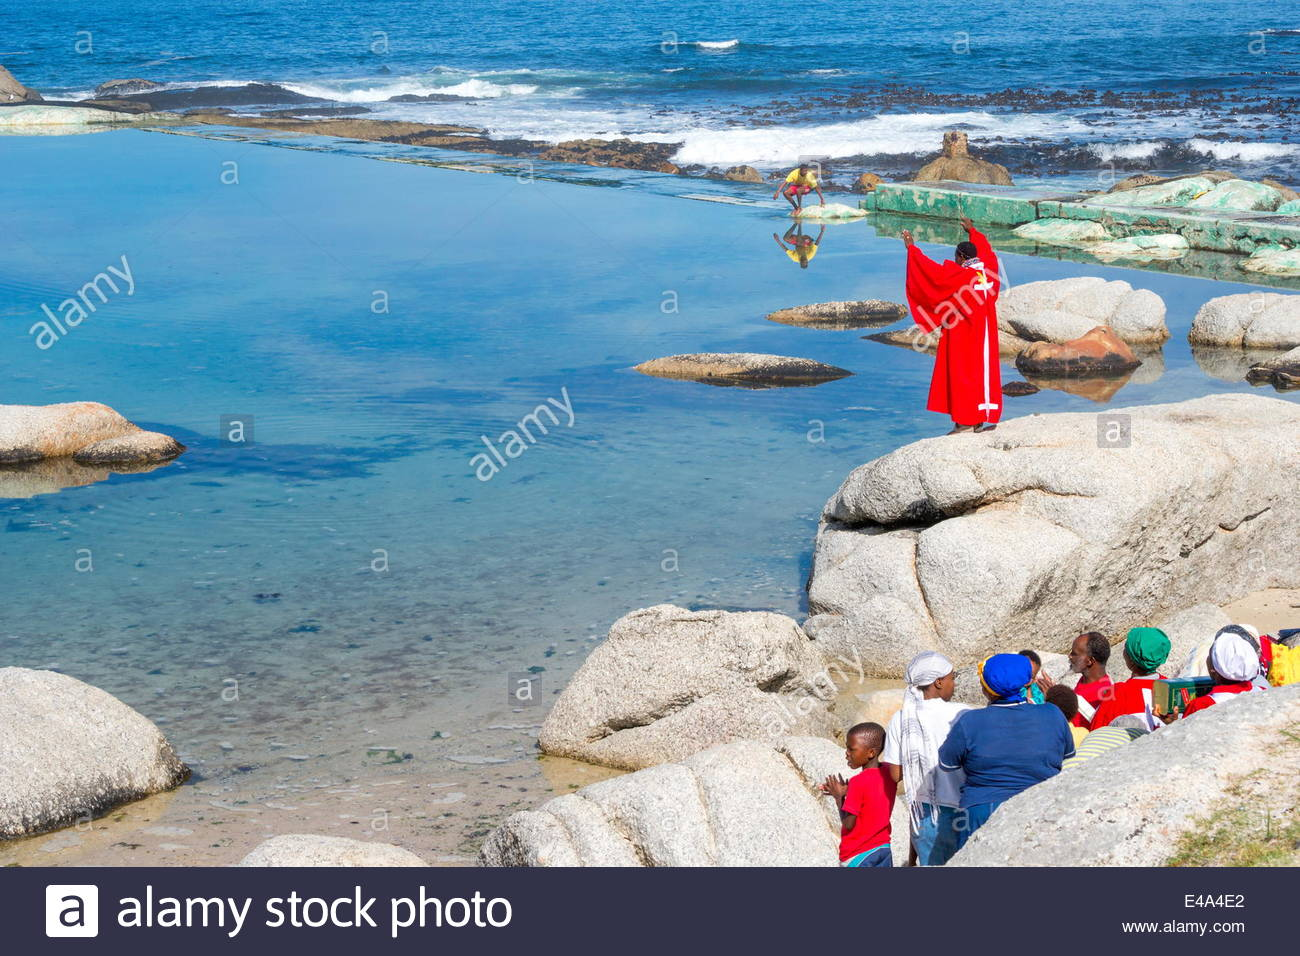 Congregation watches pastor raise his arms to pray before performing water baptism, Atlantic Ocean, Cape Town, South - Stock Image